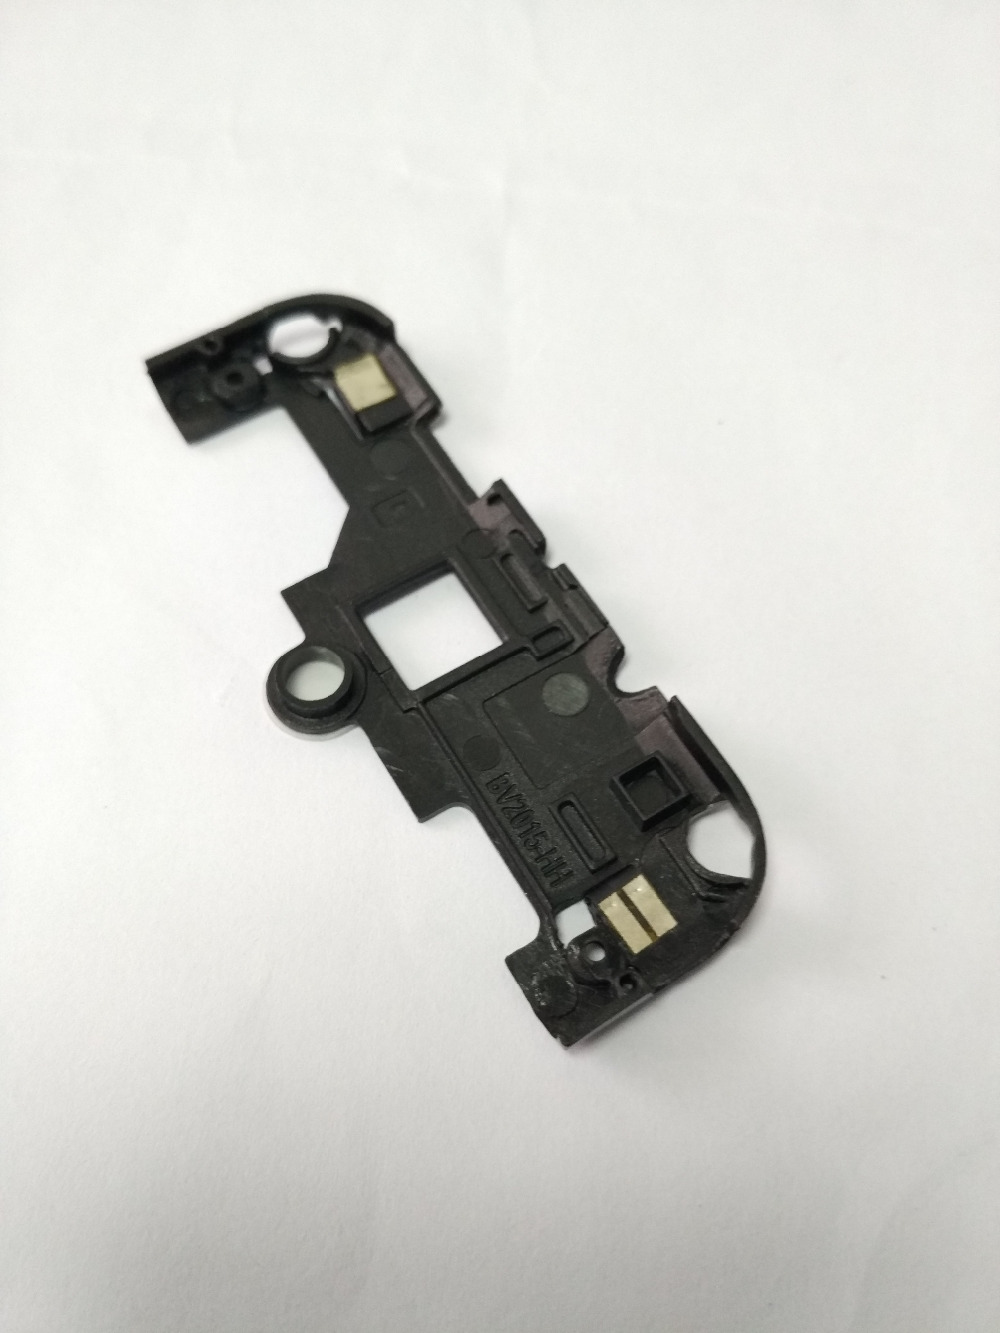 Used Original WIFI and GPS antennas signal holder for Blackview BV5000 MTK6735 Quad Core 5.0″ HD 1280×720 Free shipping